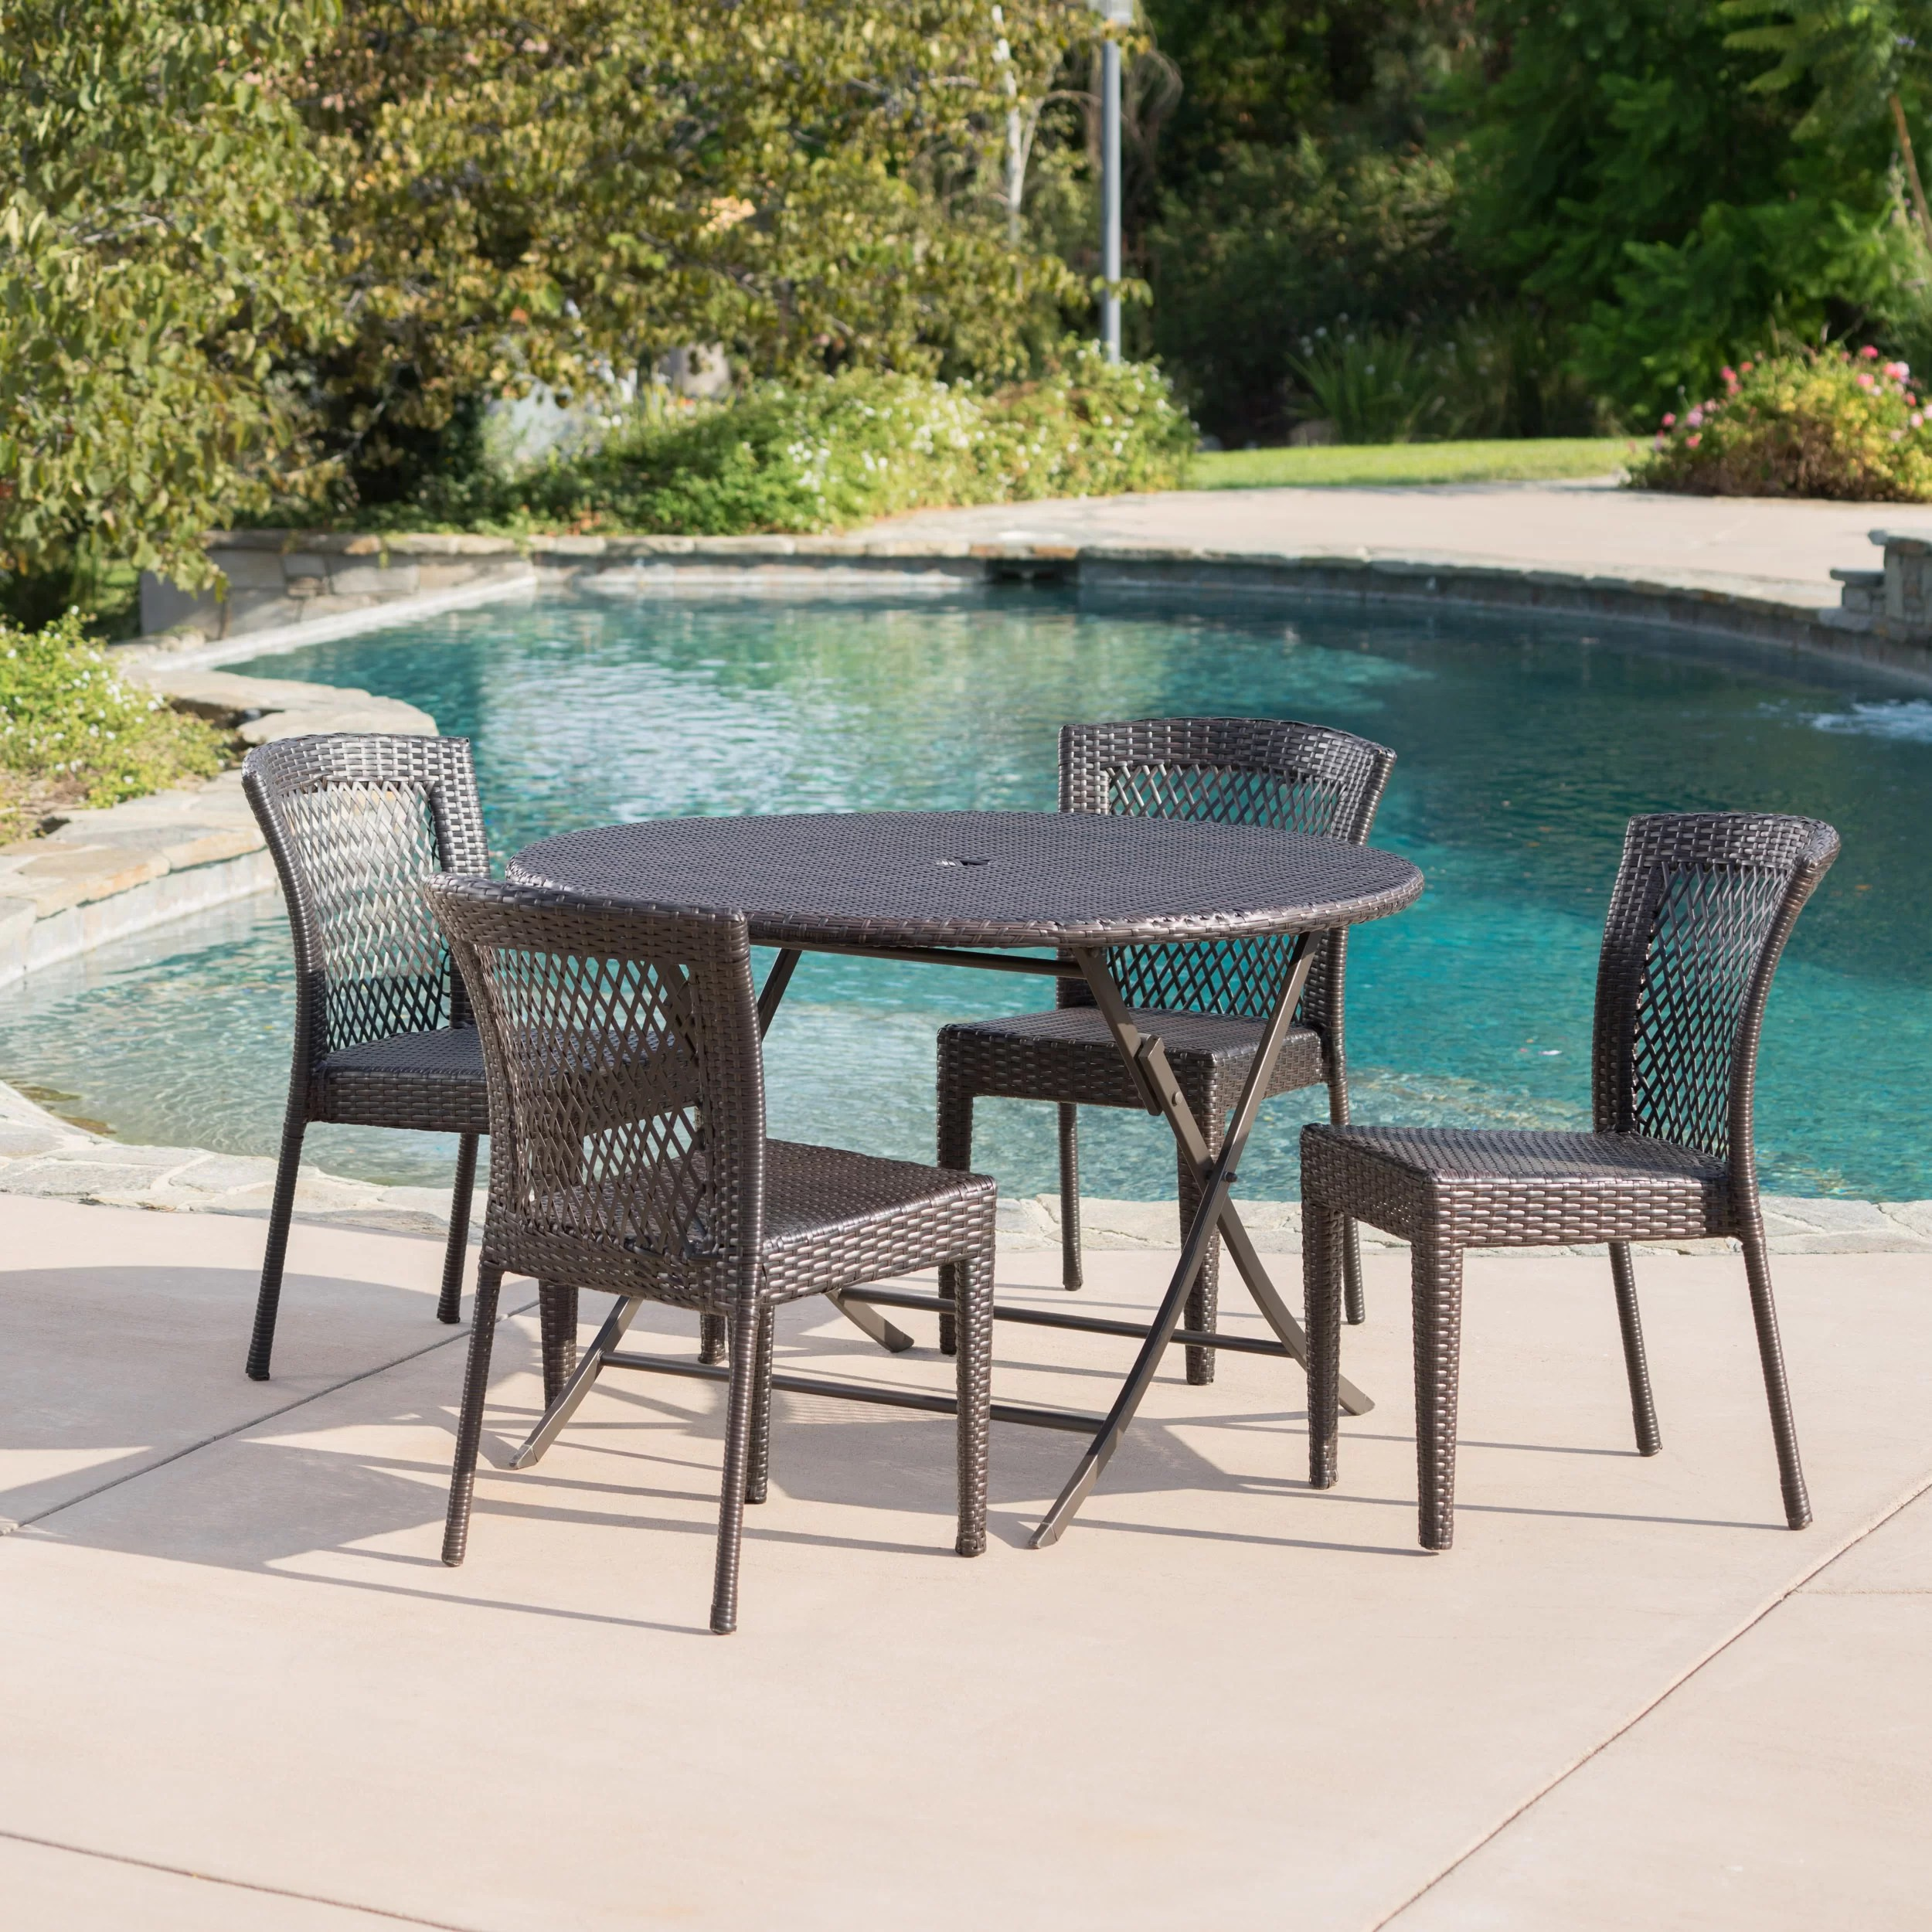 Outdoor Wicker Dining Chairs Shantay Outdoor Wicker 5 Piece Dining Set